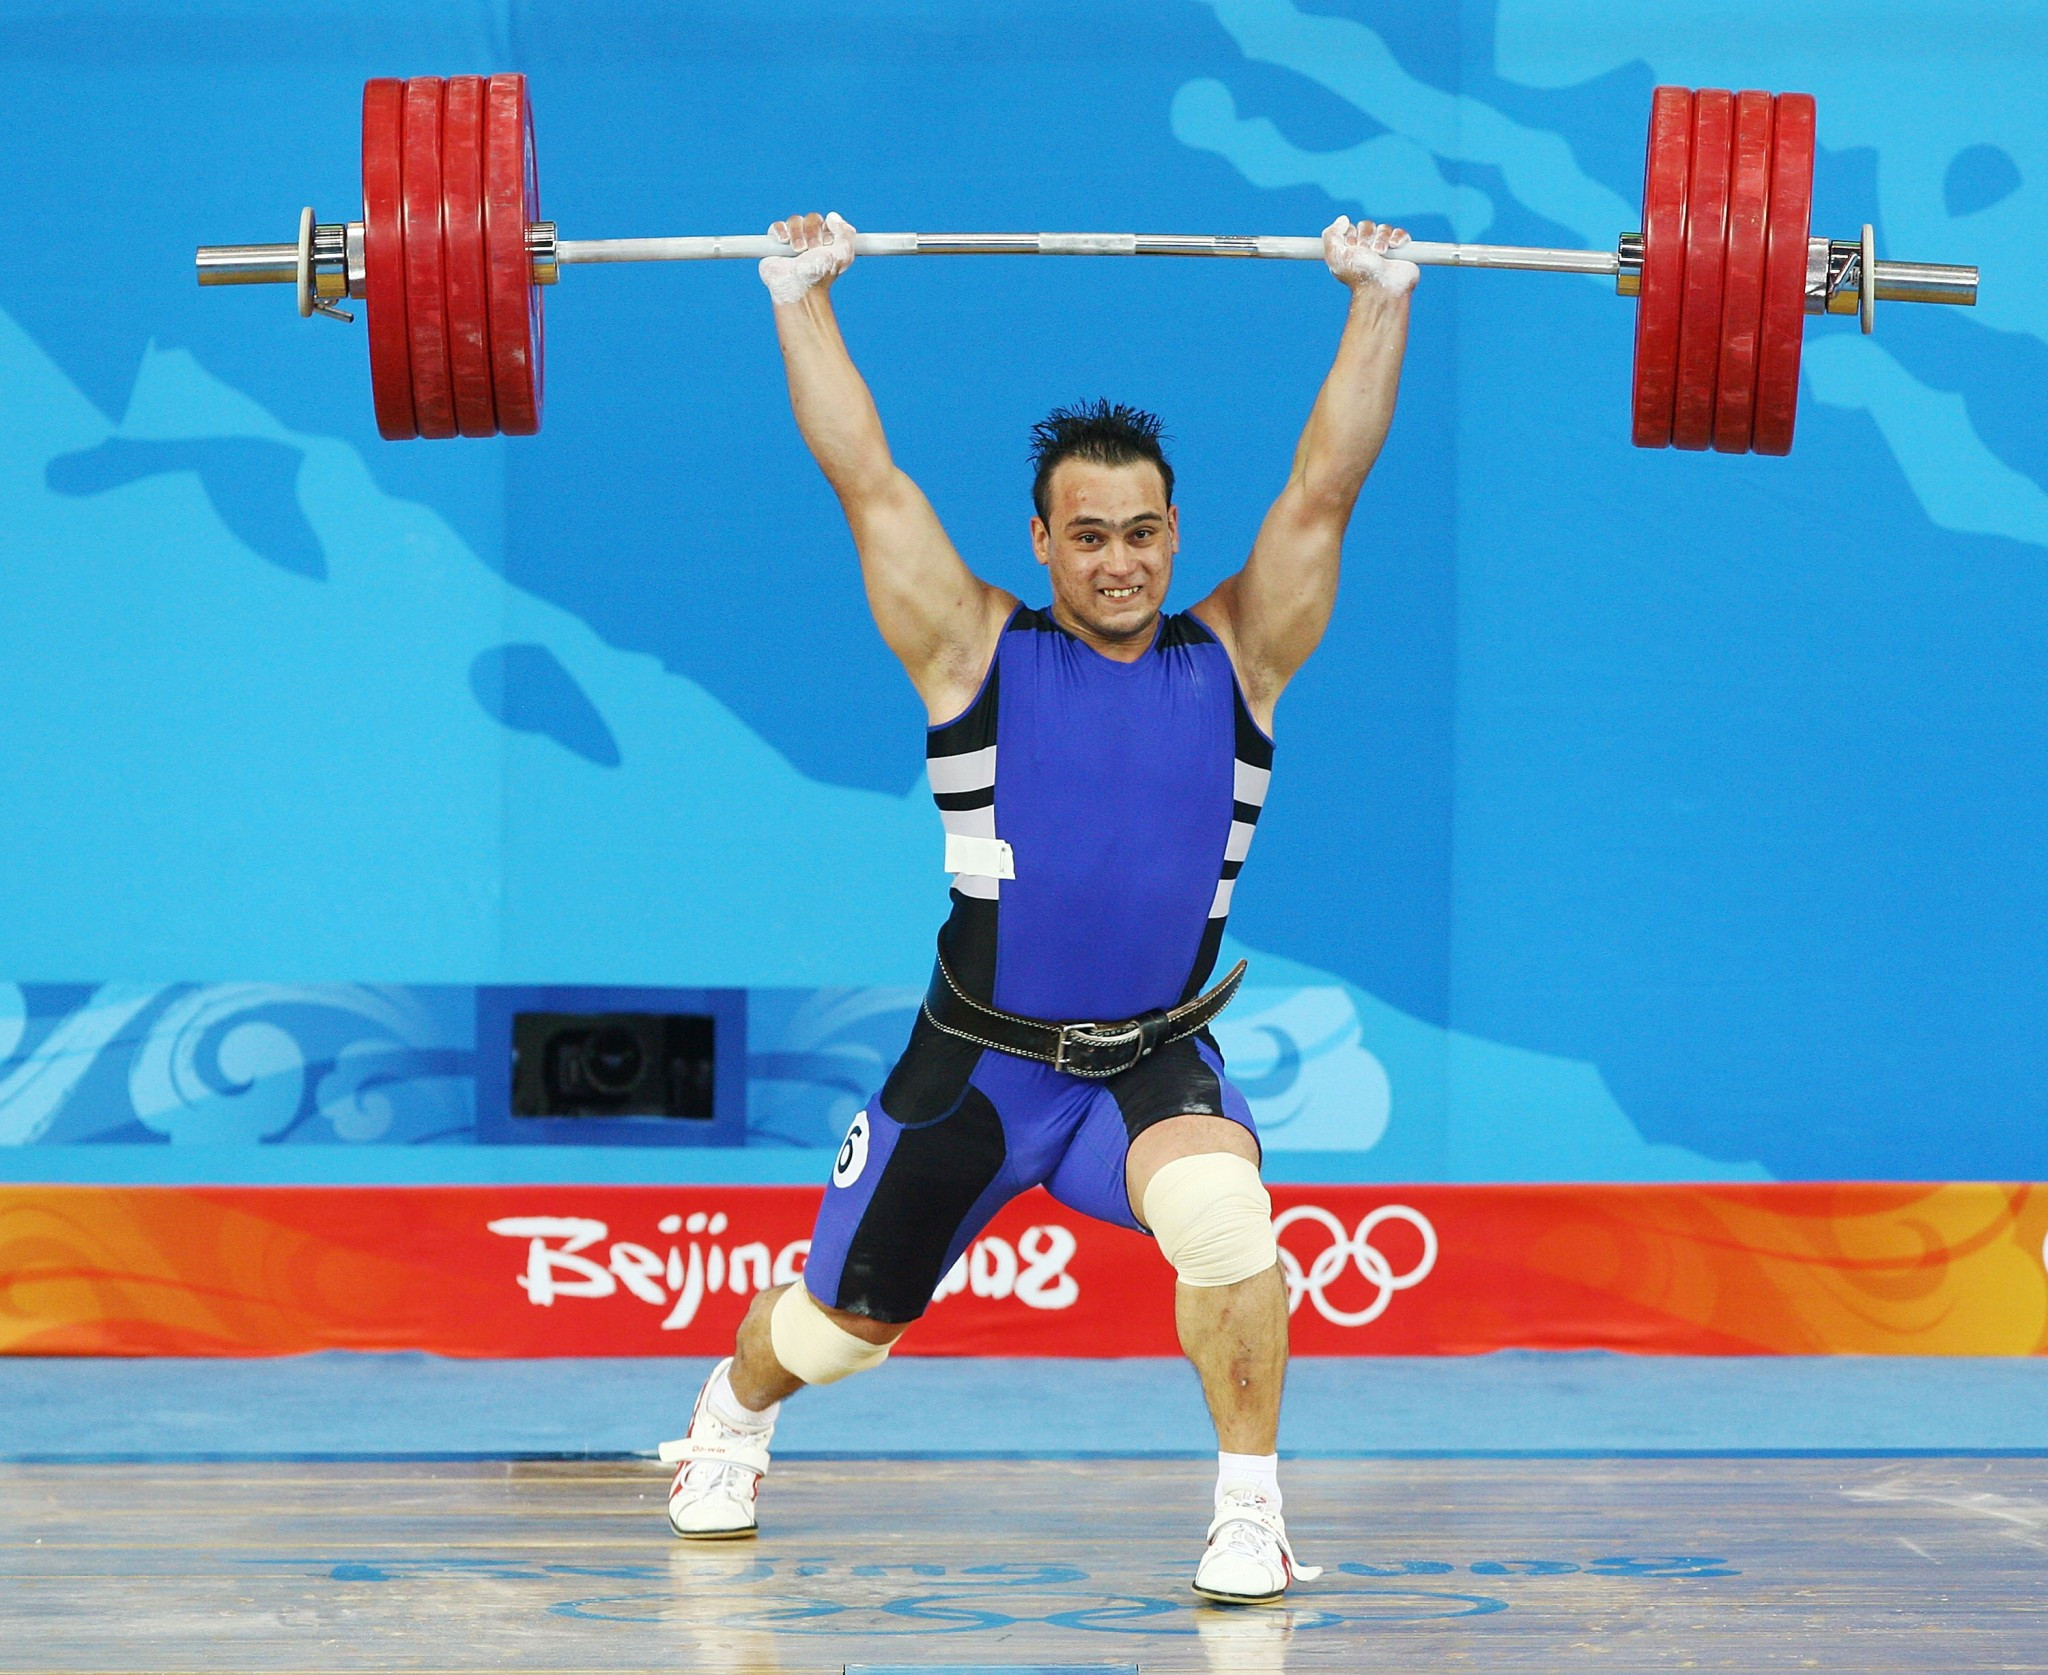 Kazakhstan's Ilya Ilyin has been stripped of Olympic gold medals from Beijing 2008 and London 2012 after failing re-tests from both Games ©Getty Images